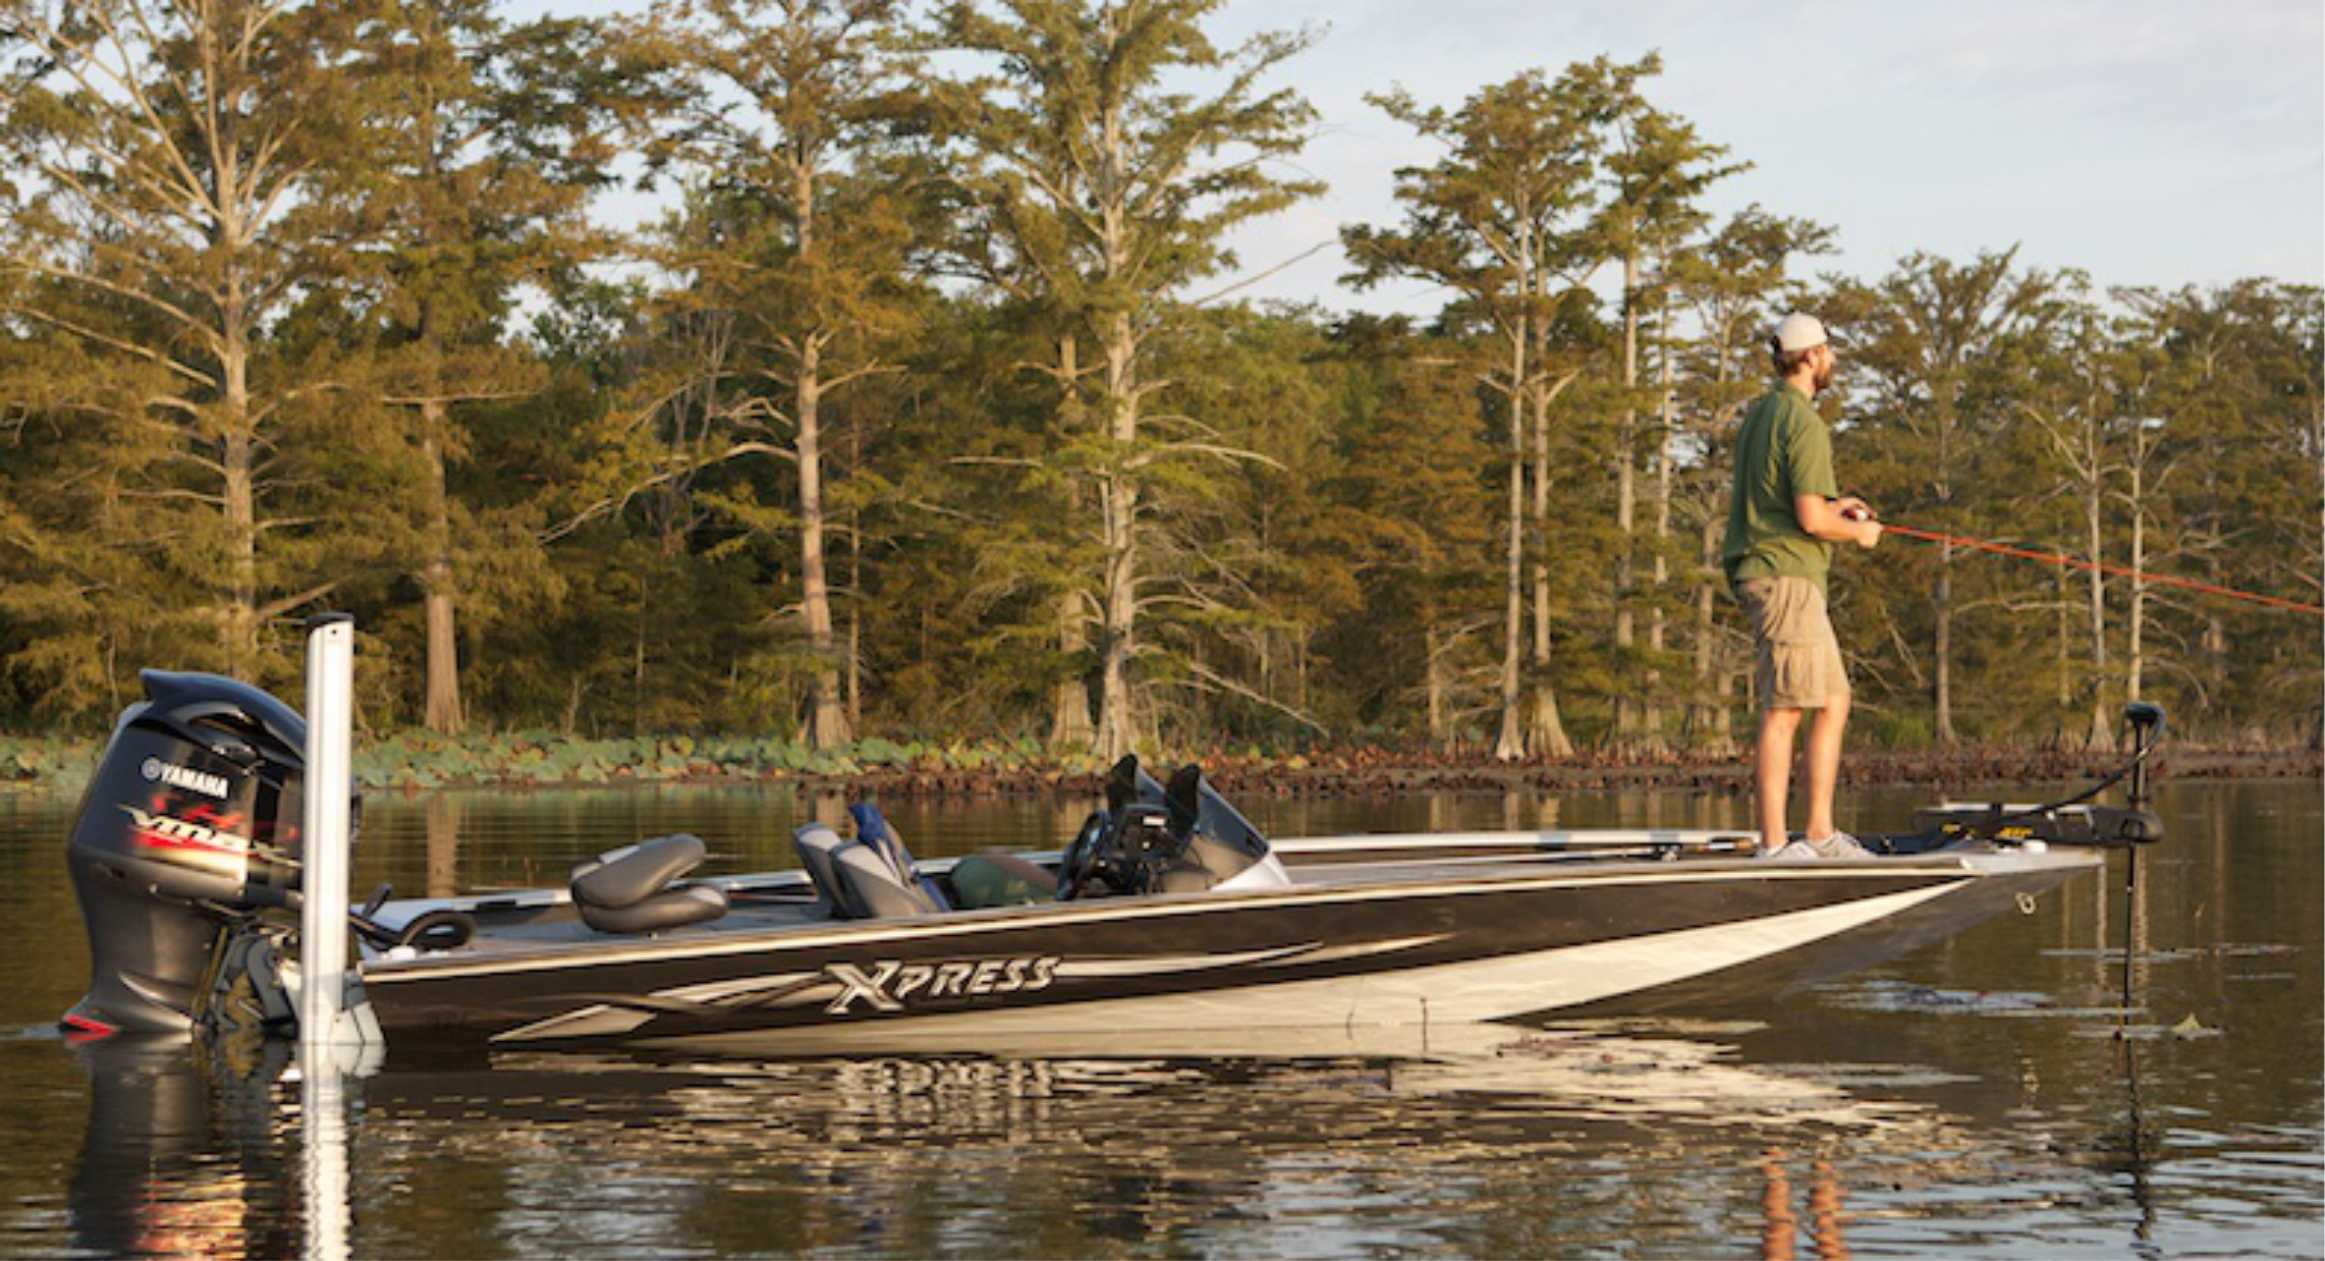 Xpress x21 Bass Boat Fishing Boat